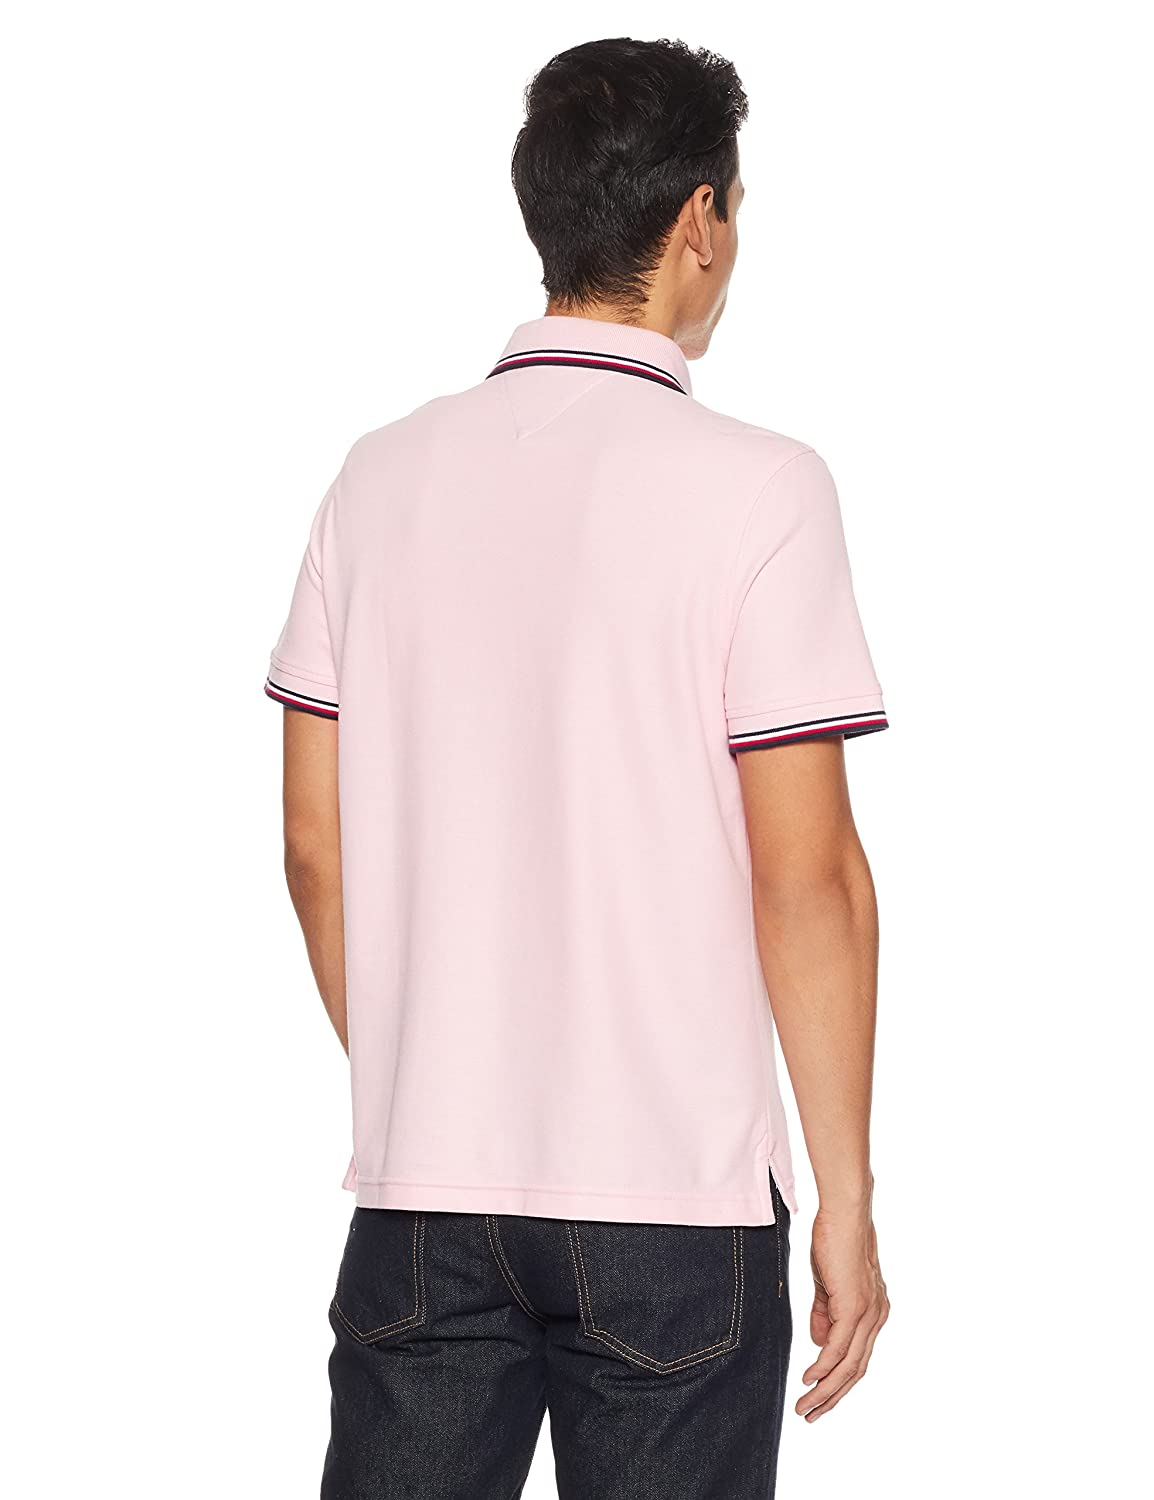 ec09619ef Tommy Hilfiger Men's Plain Regular Fit Polo: Amazon.in: Clothing &  Accessories